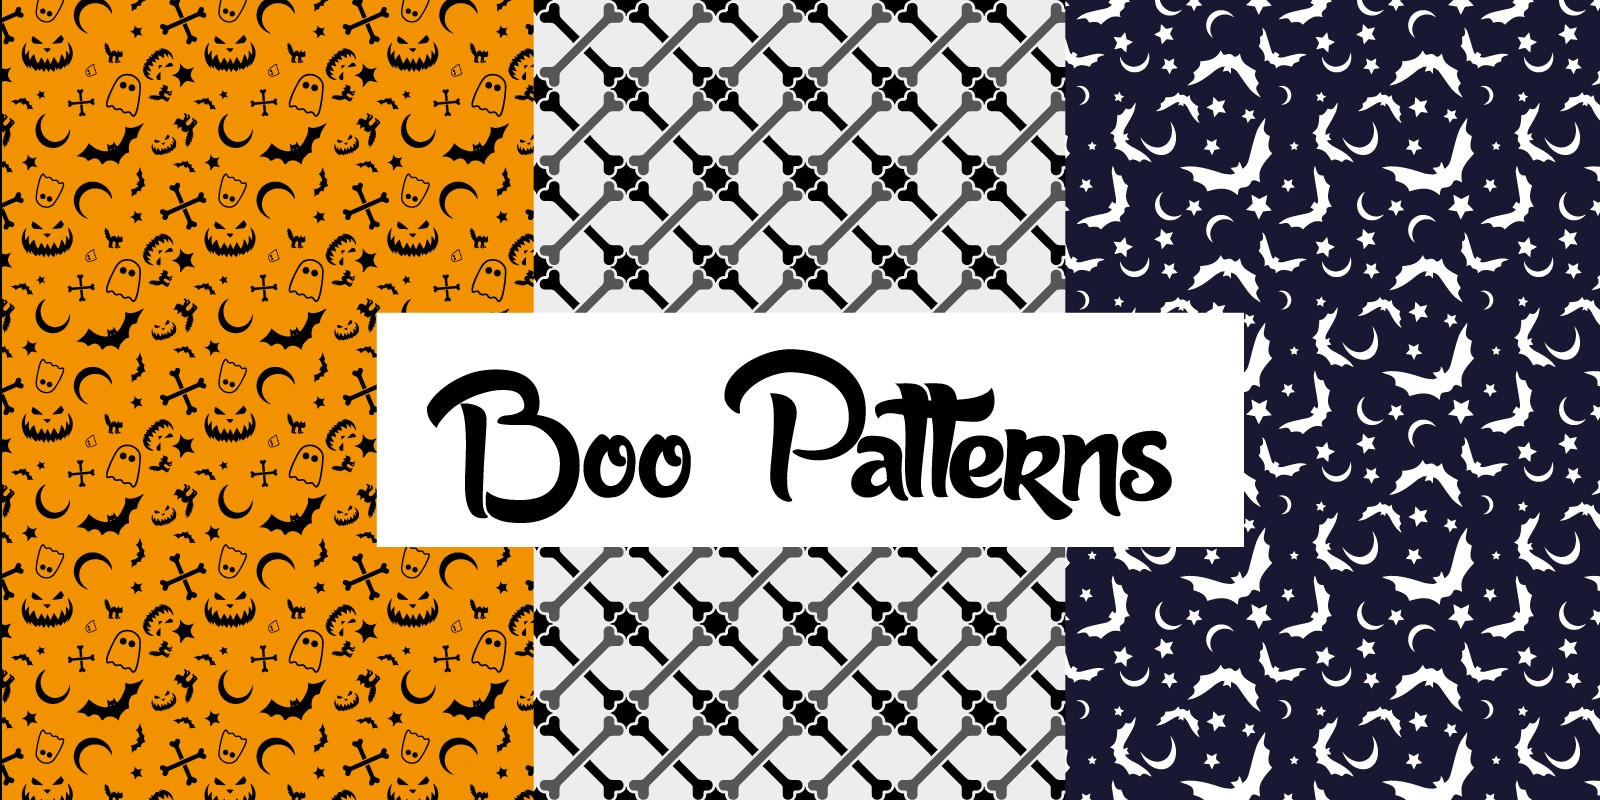 Boo Patterns